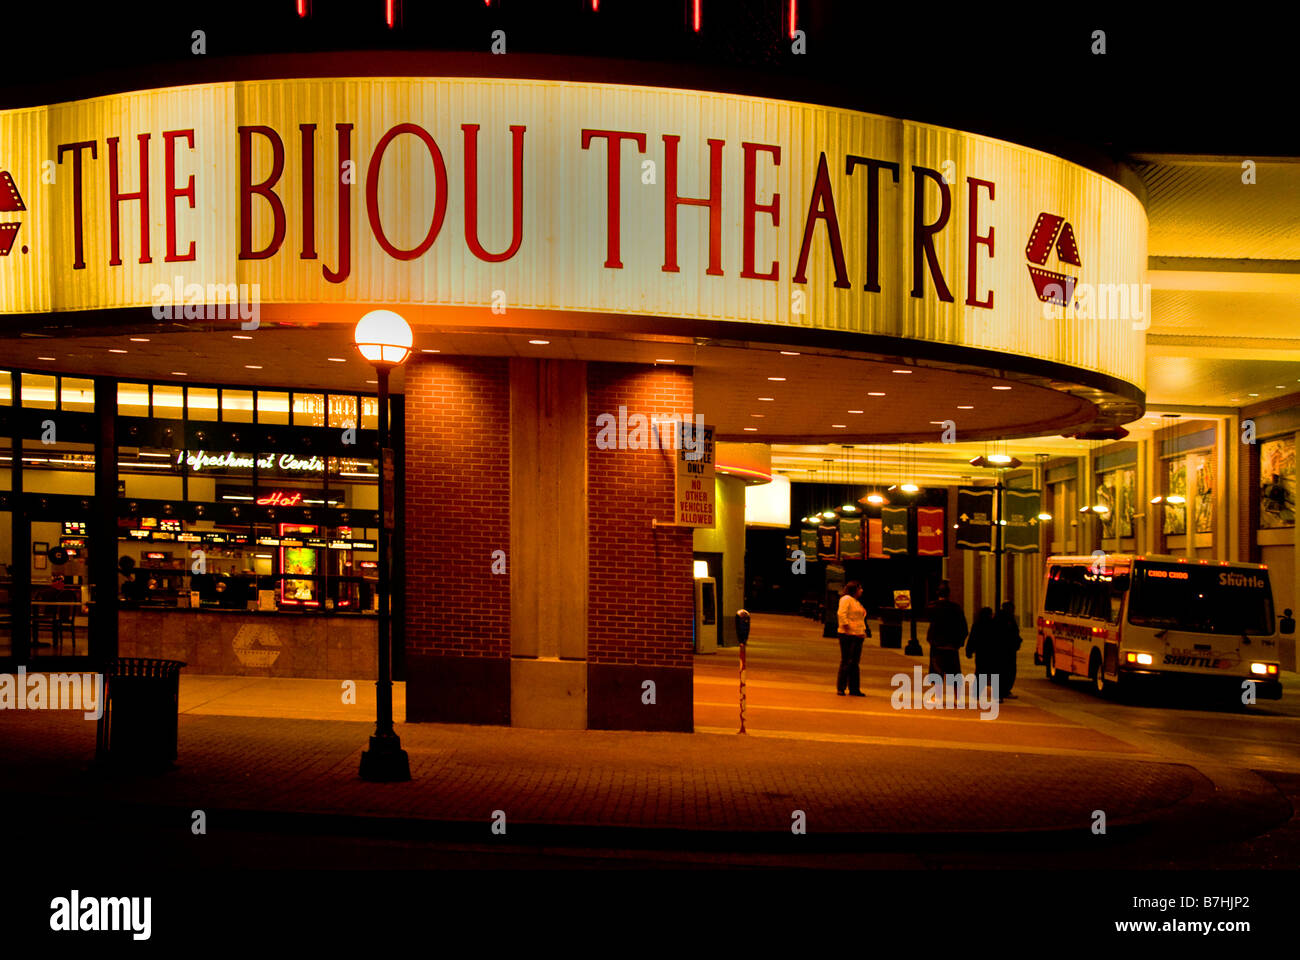 The Bijou Theatre on Broad Street in downtown Chattanooga Tennessee - Stock Image